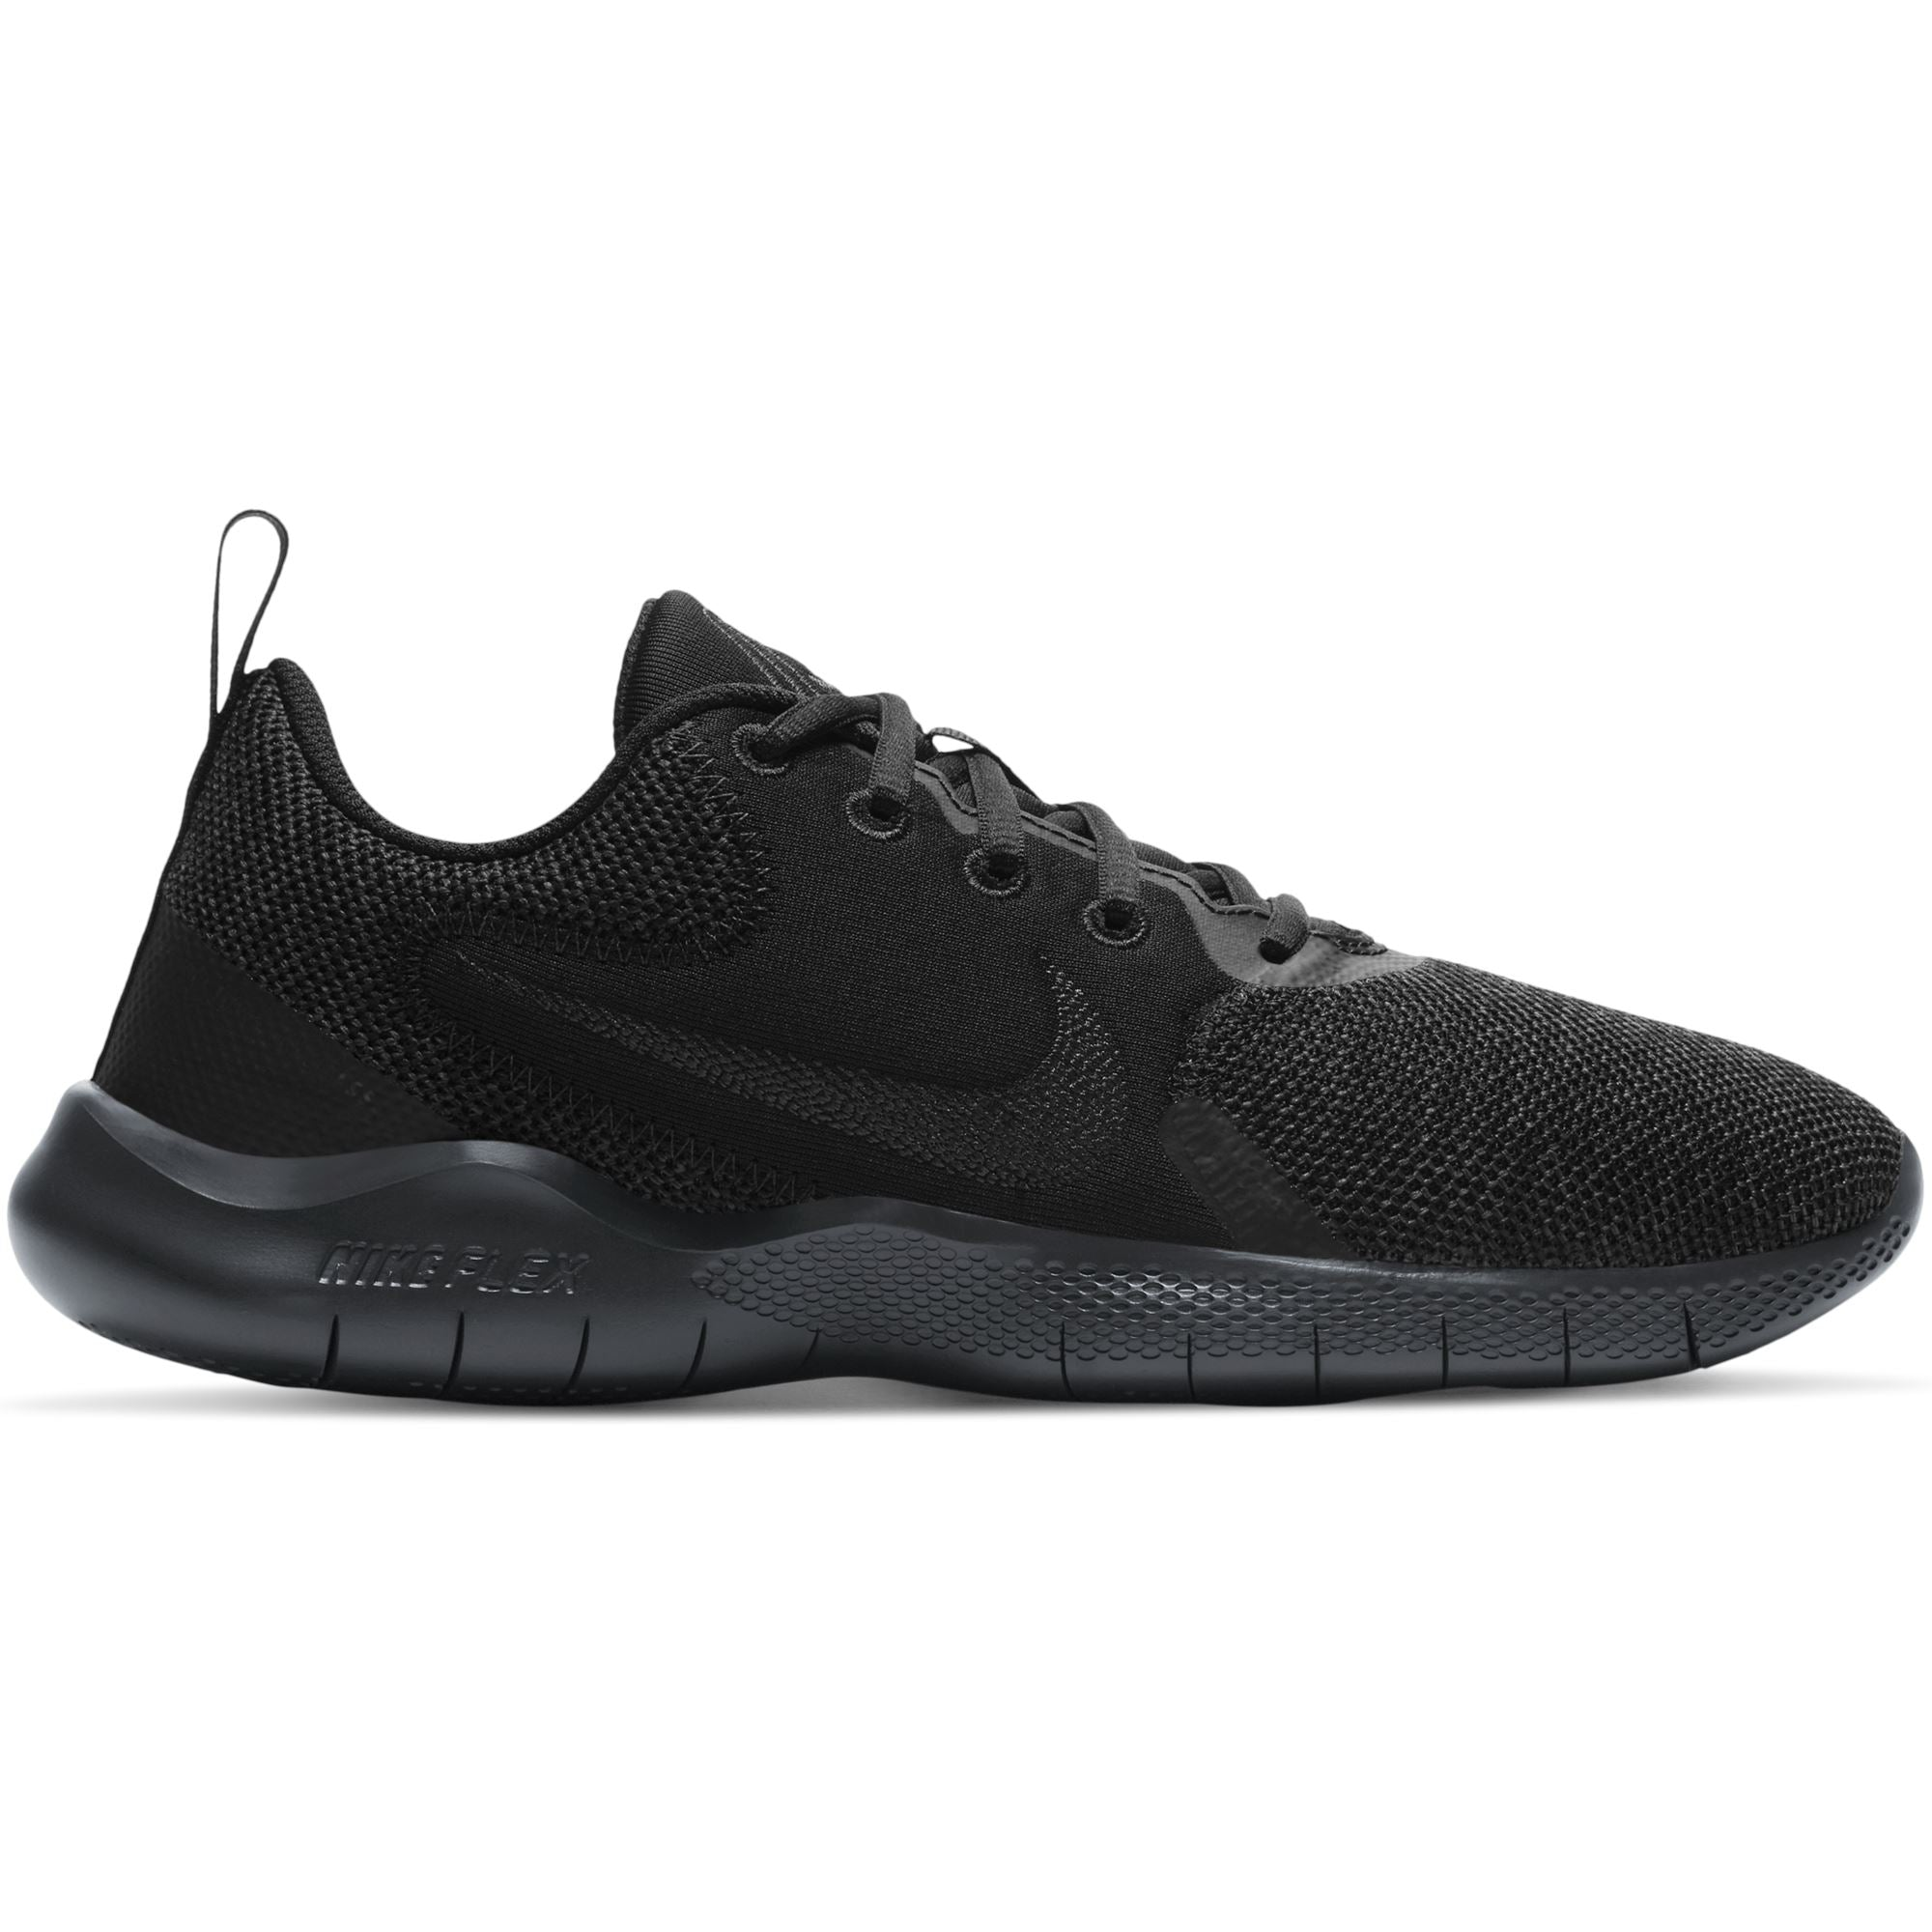 Nike Womens Flex Experience Run 10 - Black/Dark Smoke Grey SP-Footwear-Womens Nike